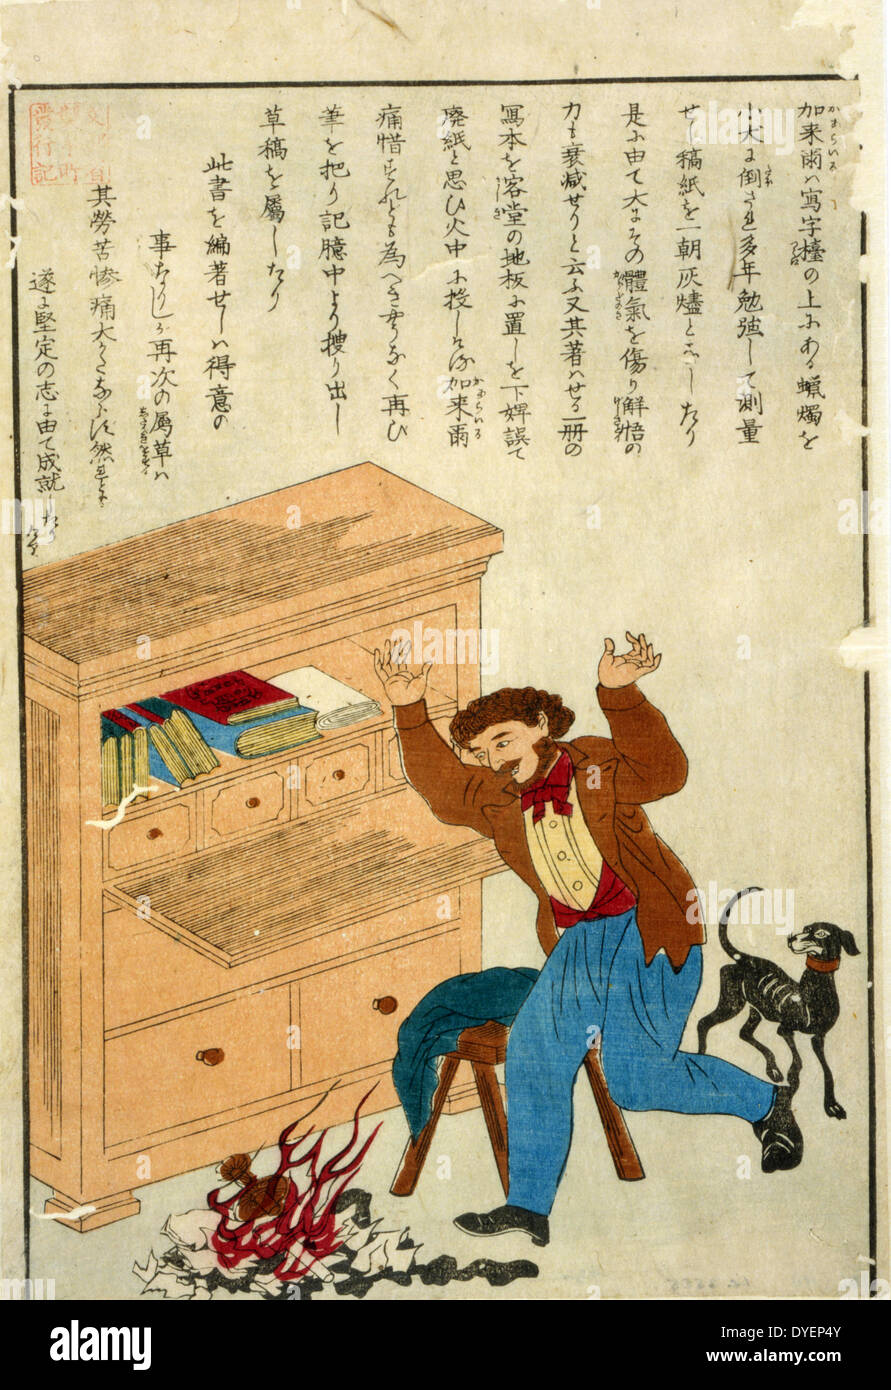 Thomas Carlyle, 1795-1881. author Published: Japan : Japanese Department of Education, [between 1850 and 1900] - Stock Image